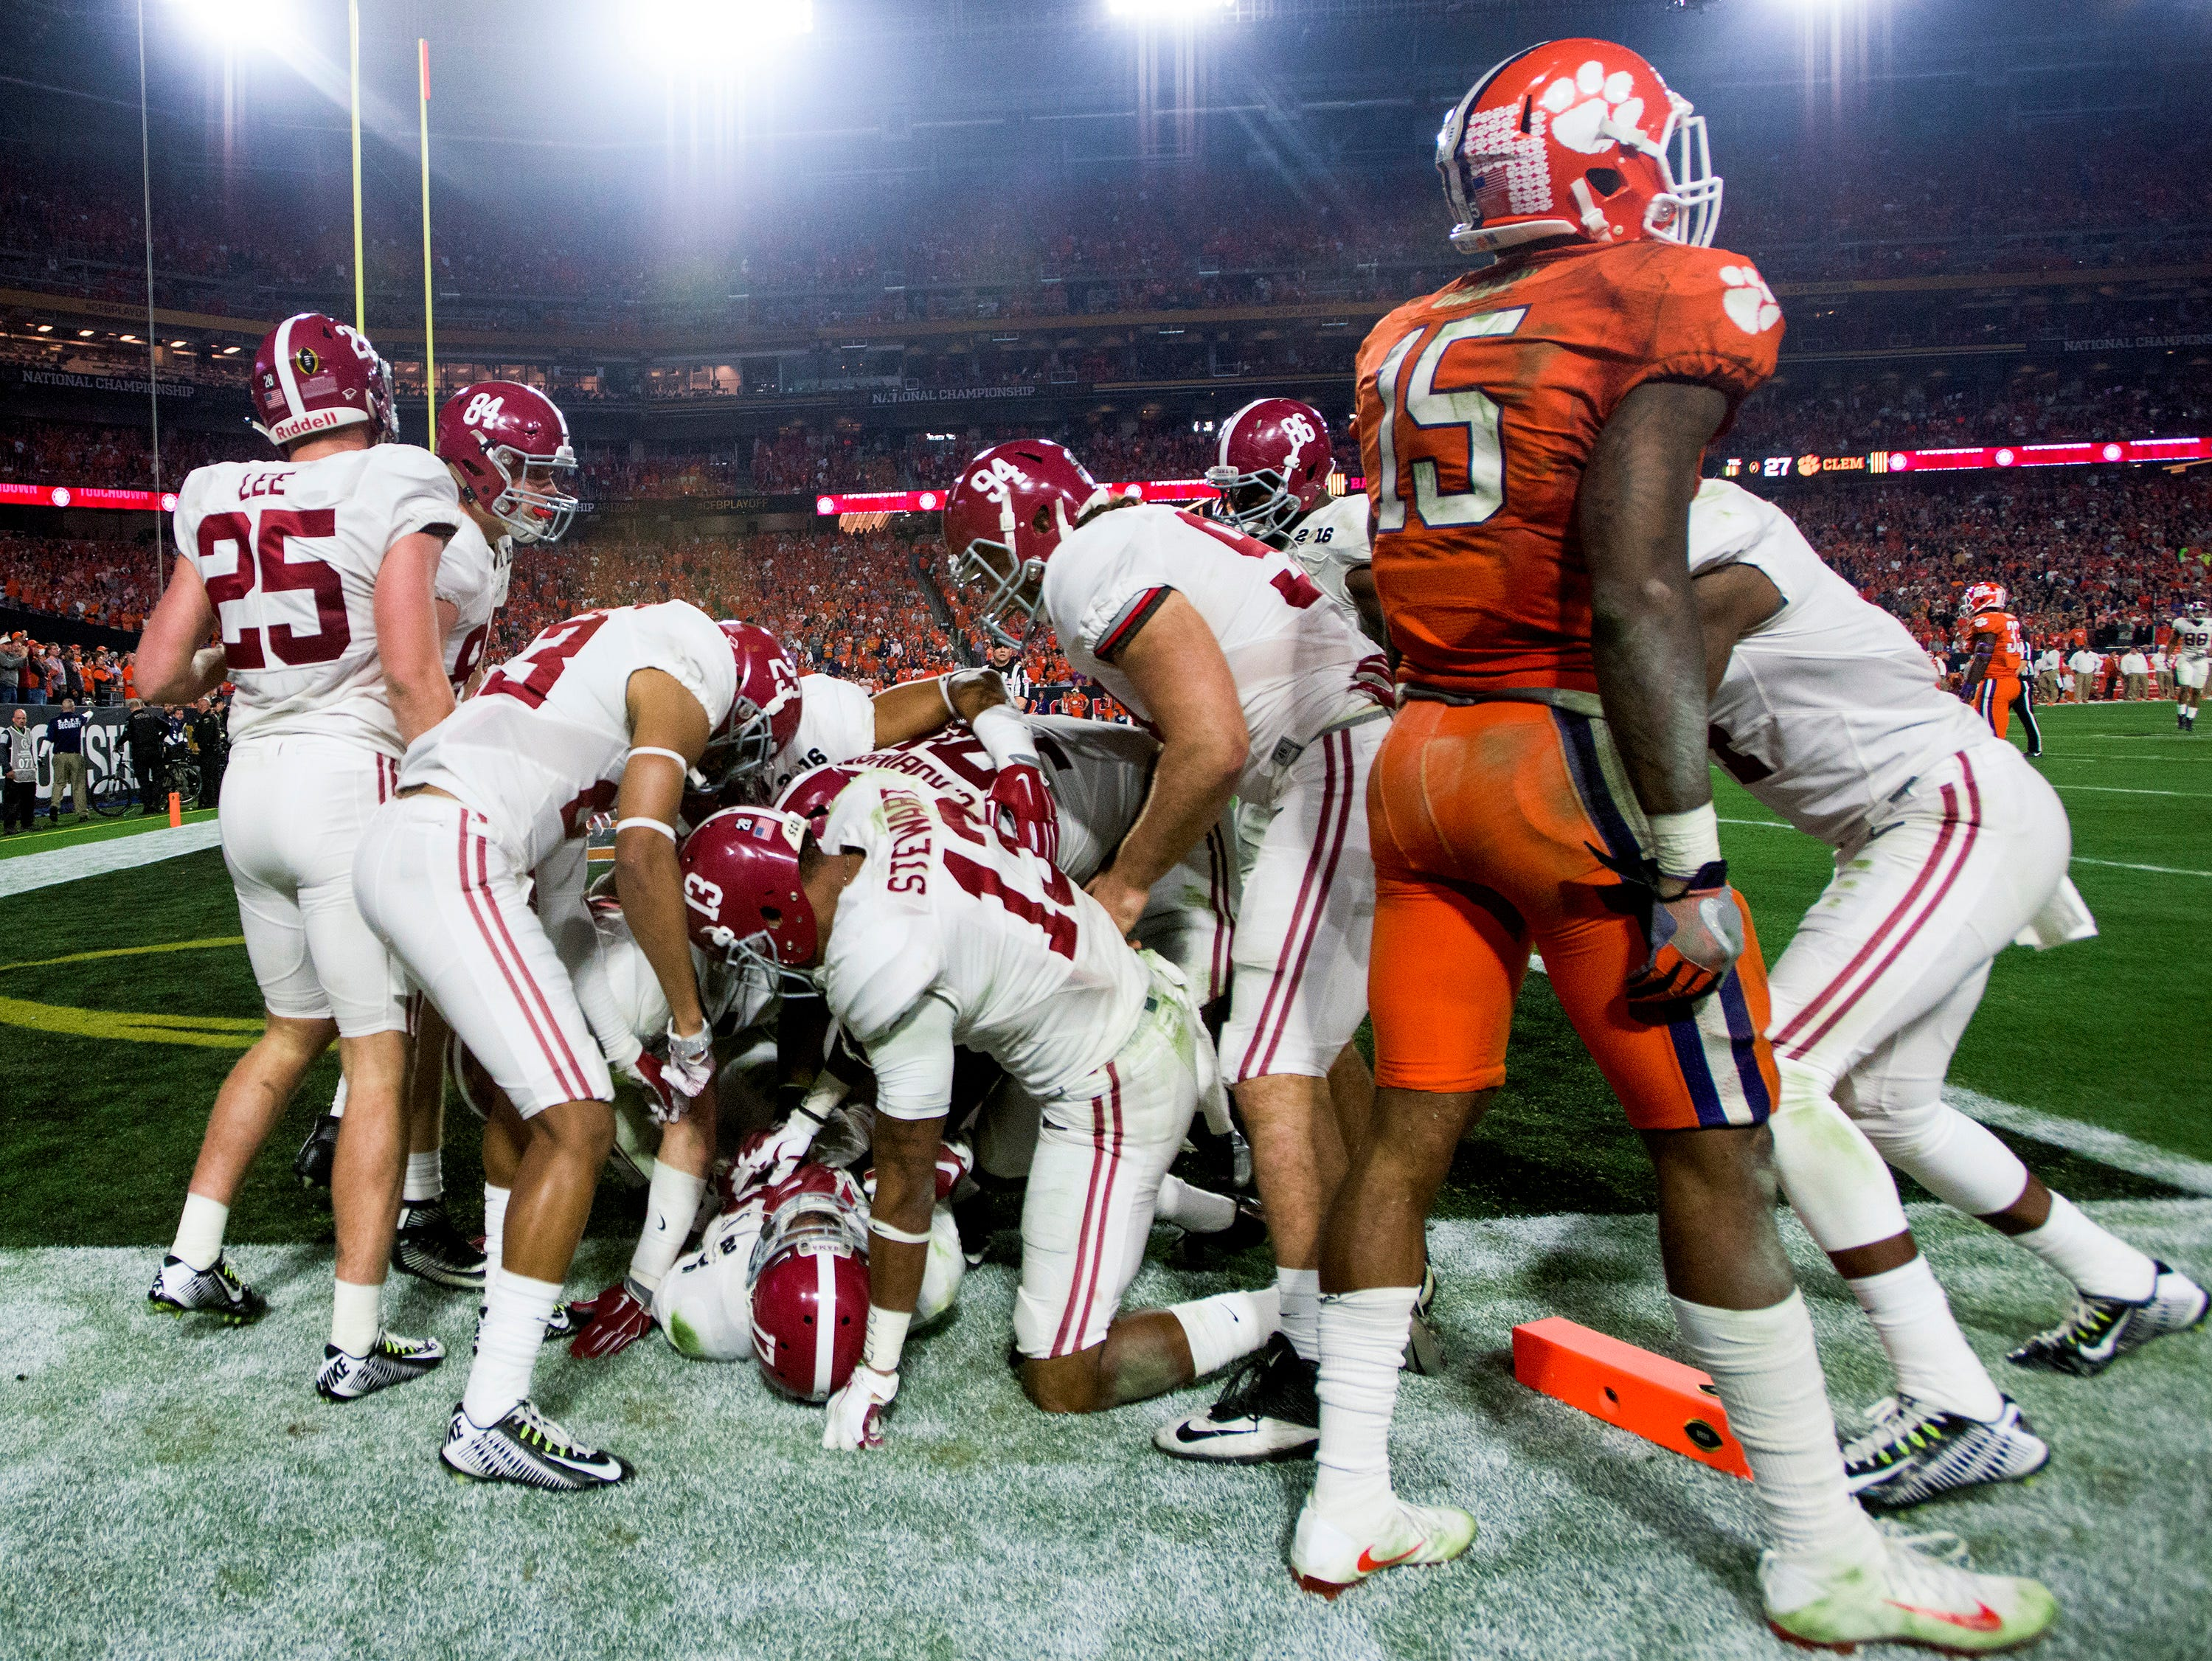 Alabama running back Kenyan Drake (17) is swarmed after returning a kick for a touchdown in the College Football Playoff Championship Game on Monday January 11, 2016 at University of Phoenix Stadium in Glendale, Az.